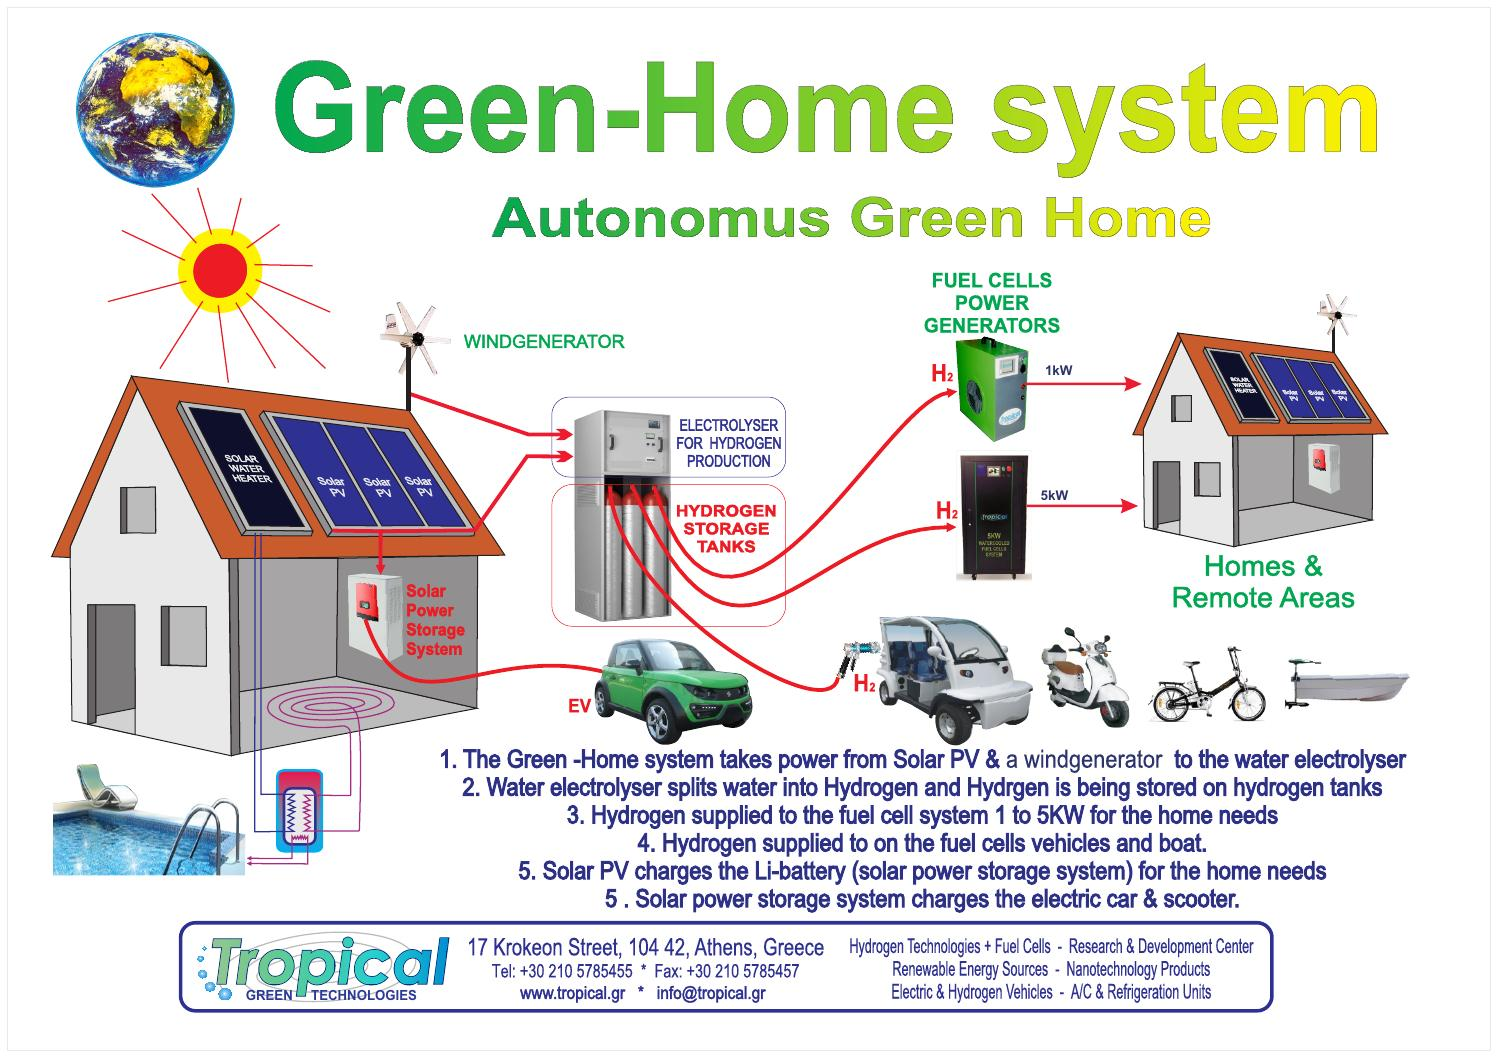 Tropical Eco Home Solutions & projects 2015 by GEORGE LAGIOS